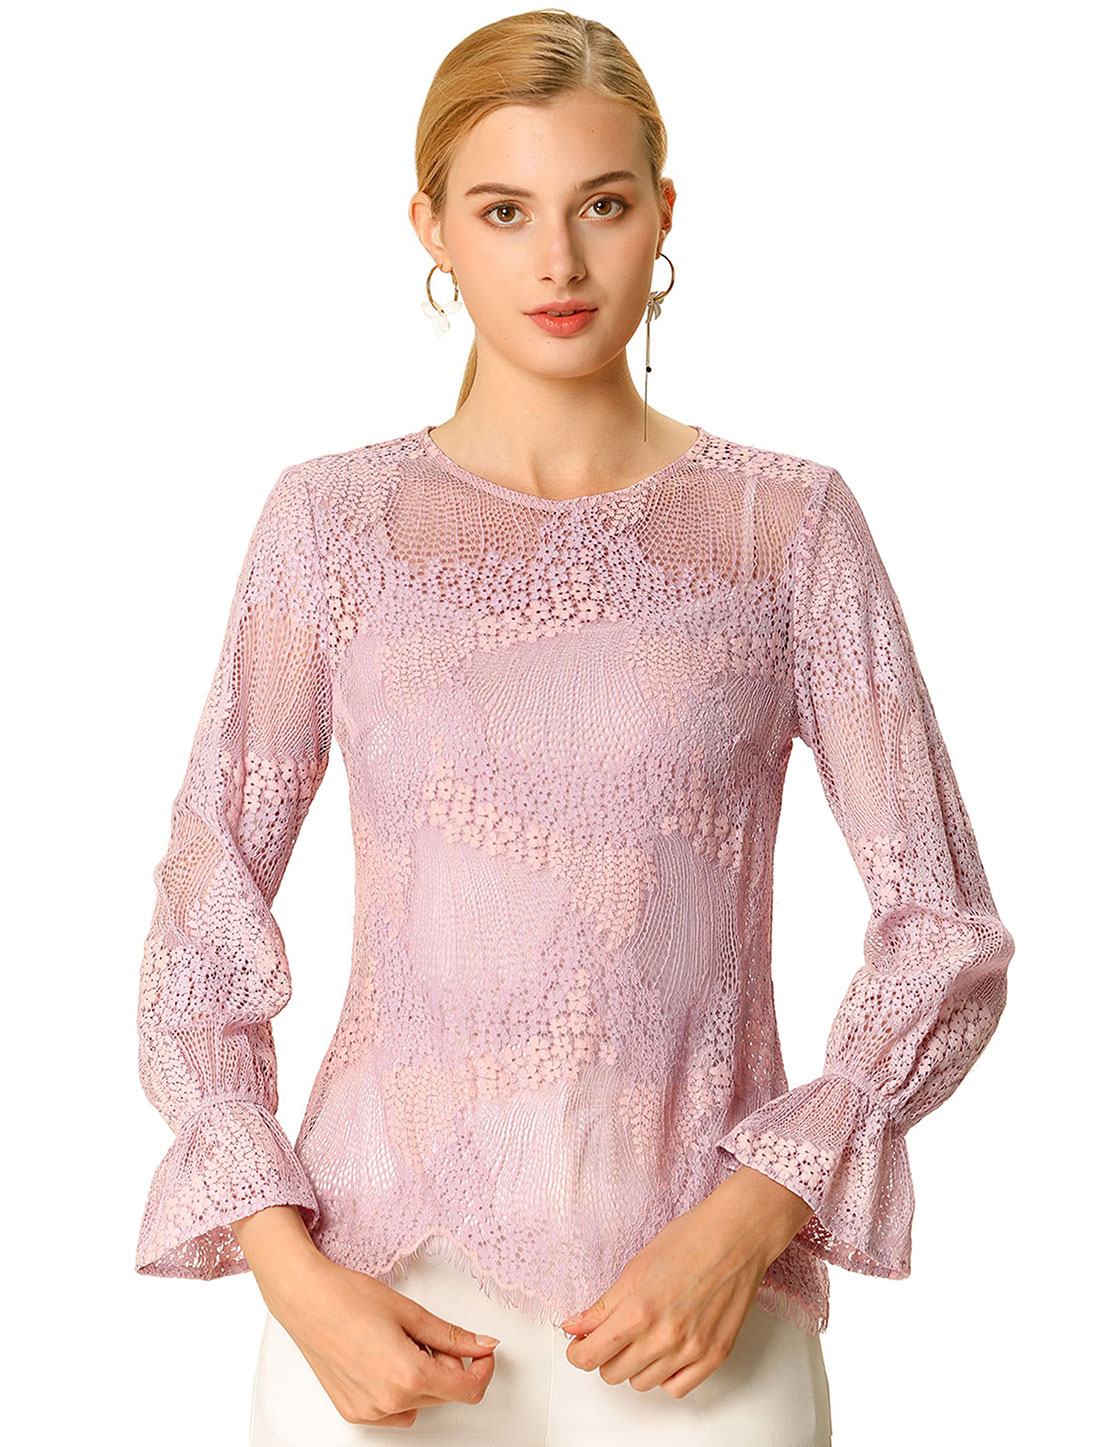 Allegra K Women's Round Neck Ruffle Long Sleeves Lace Top Pink S